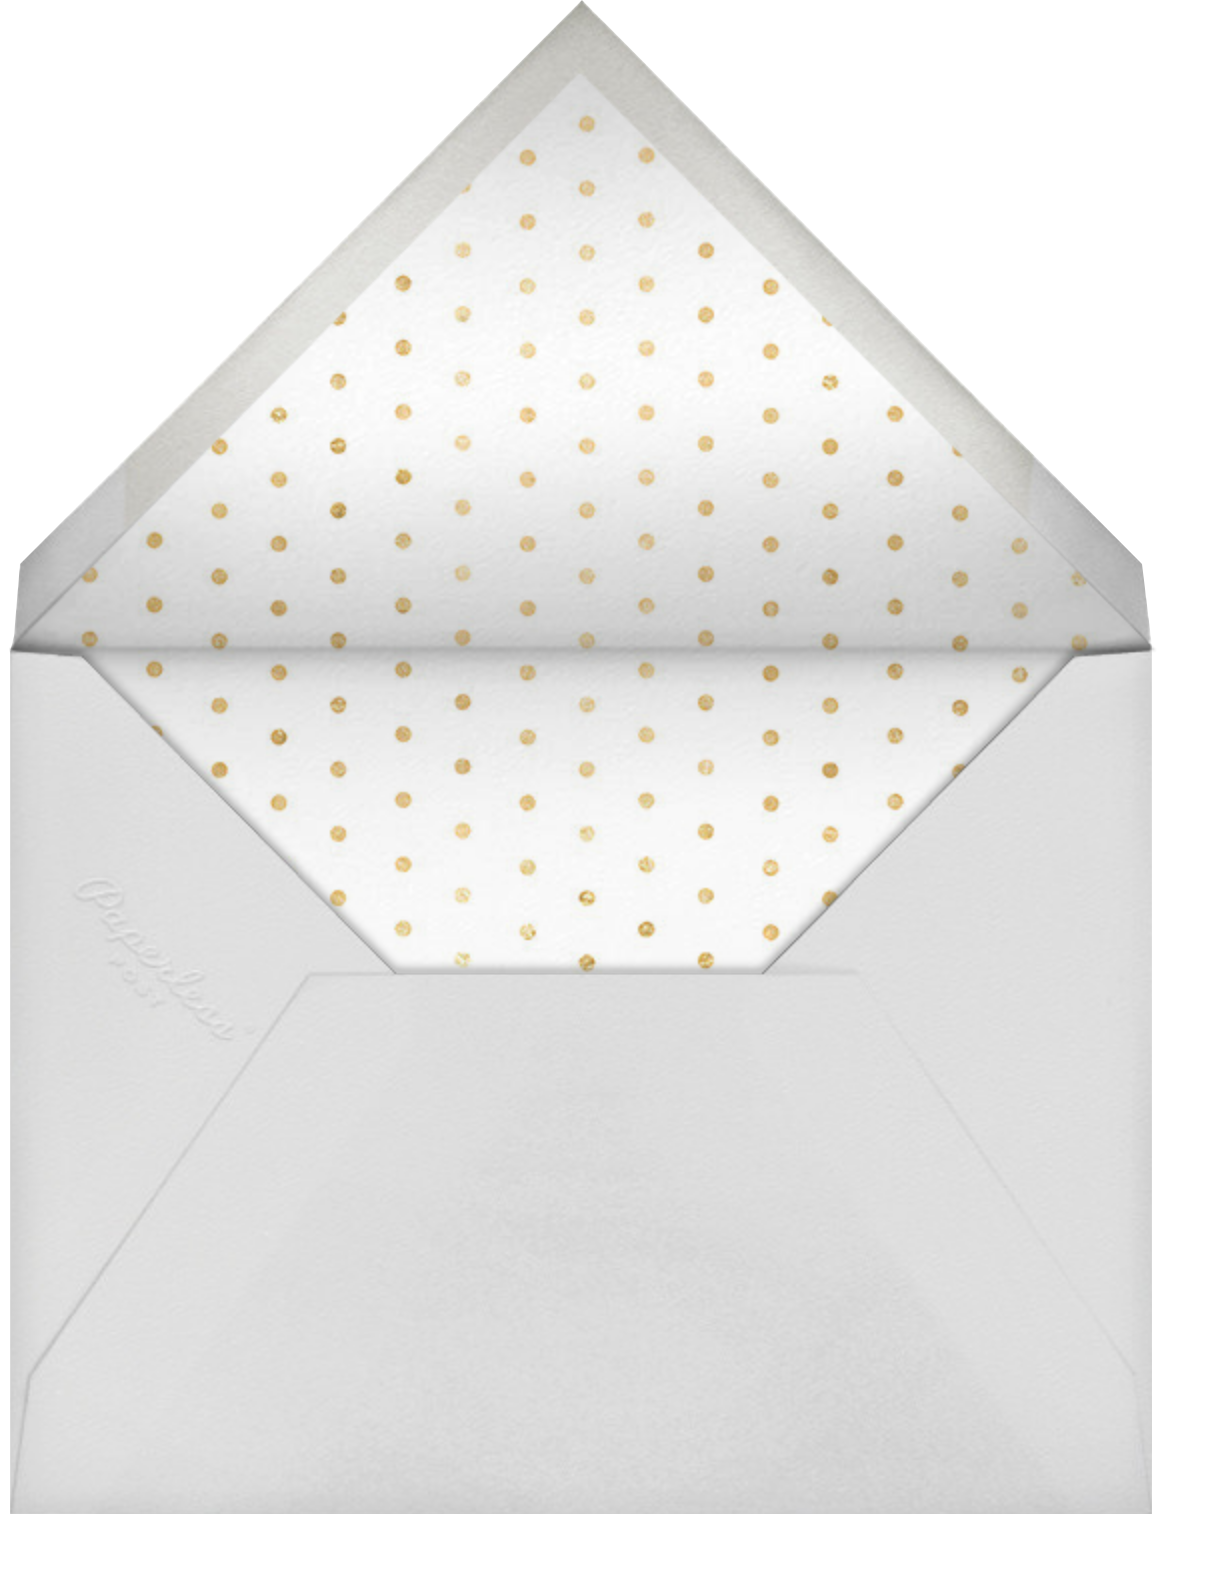 Nouveau (A) - Paperless Post - Personalized stationery - envelope back